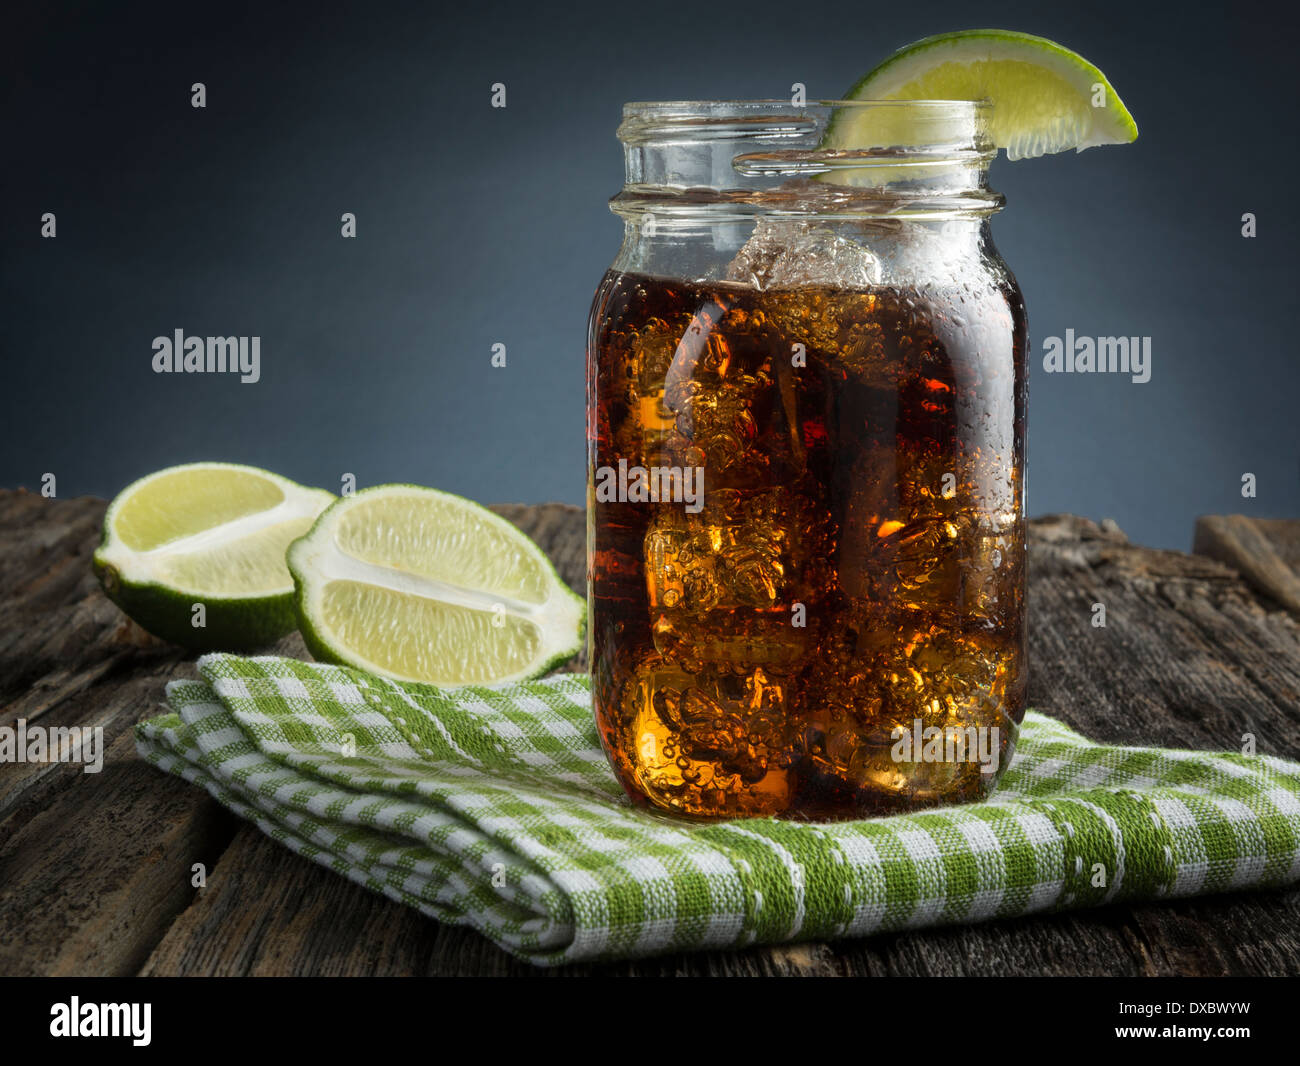 Cuba Libre or rum and cola drink with ice and lime in mason jar - Stock Image